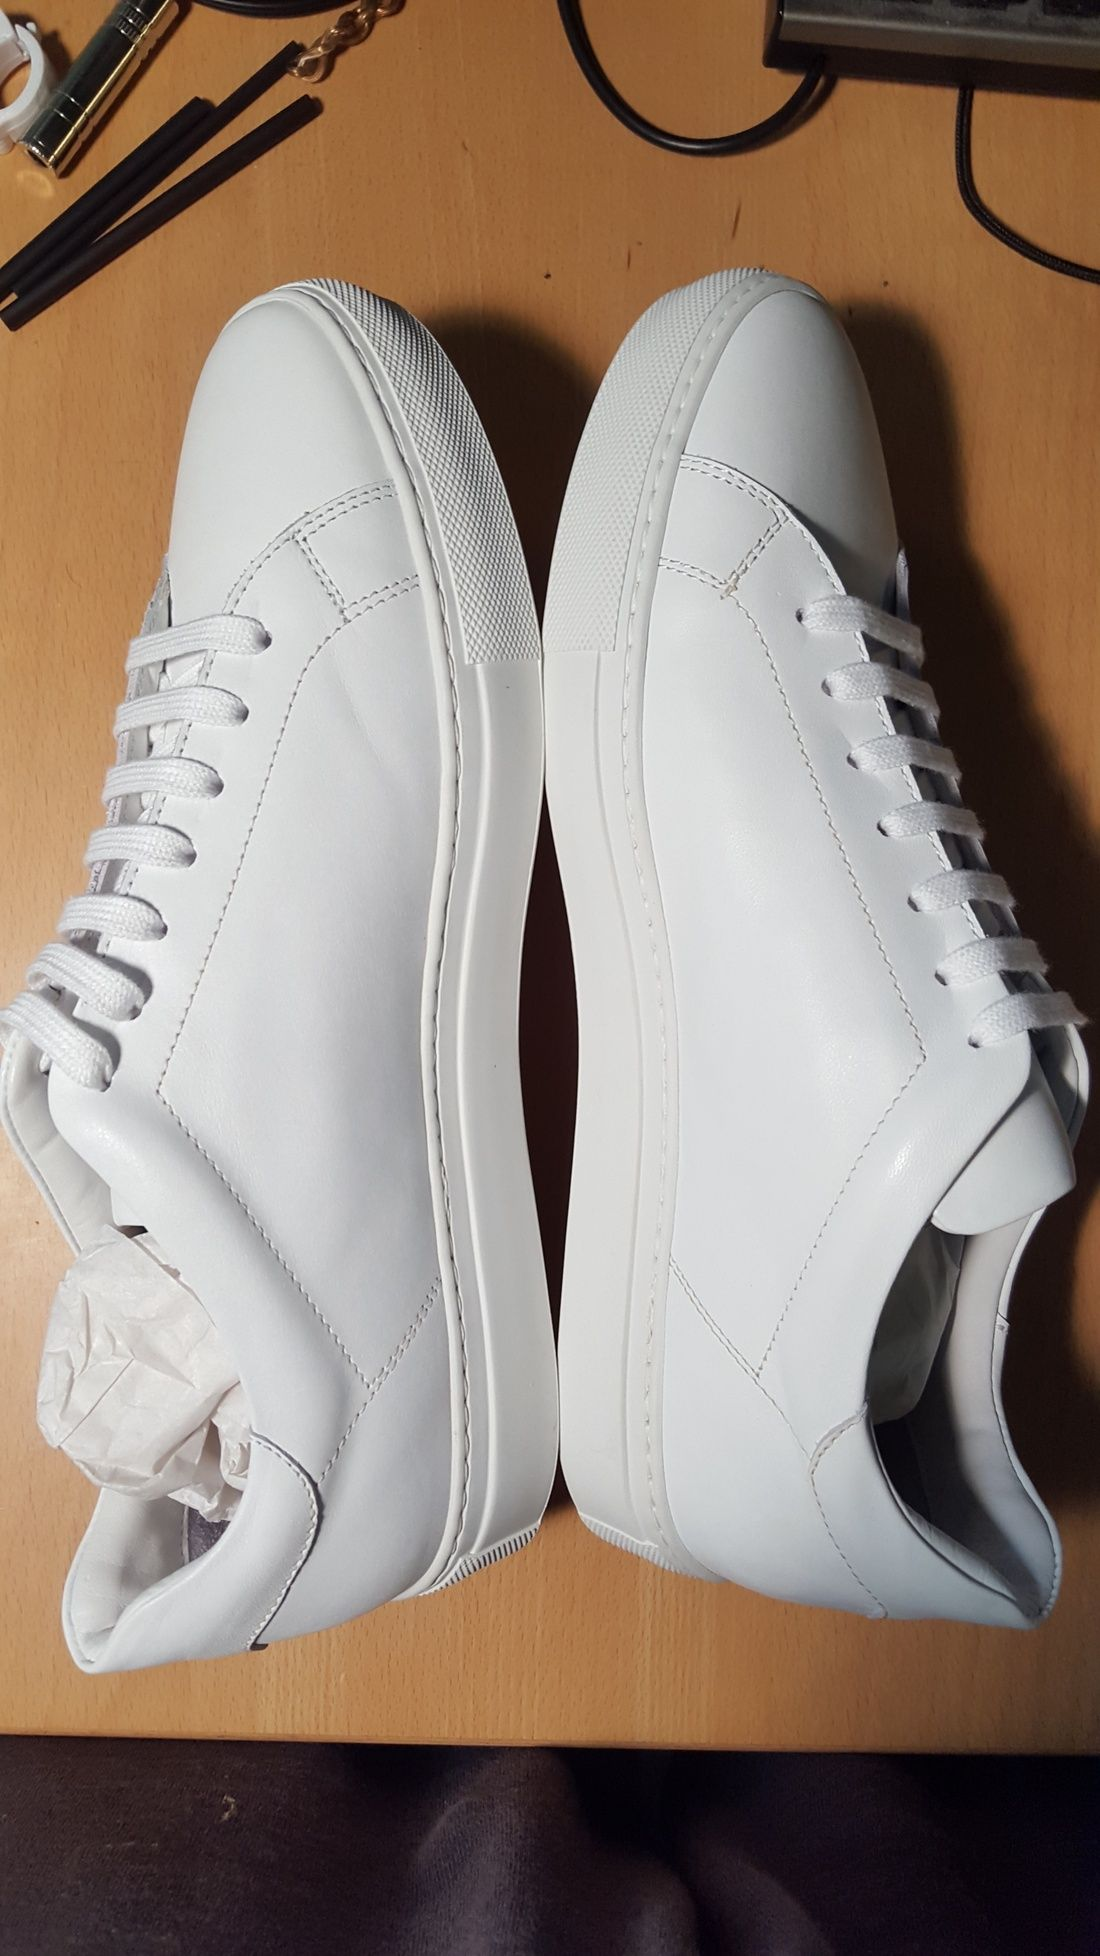 0843387f6cd6 Svensson Classic Low White Size 9  225 - Grailed